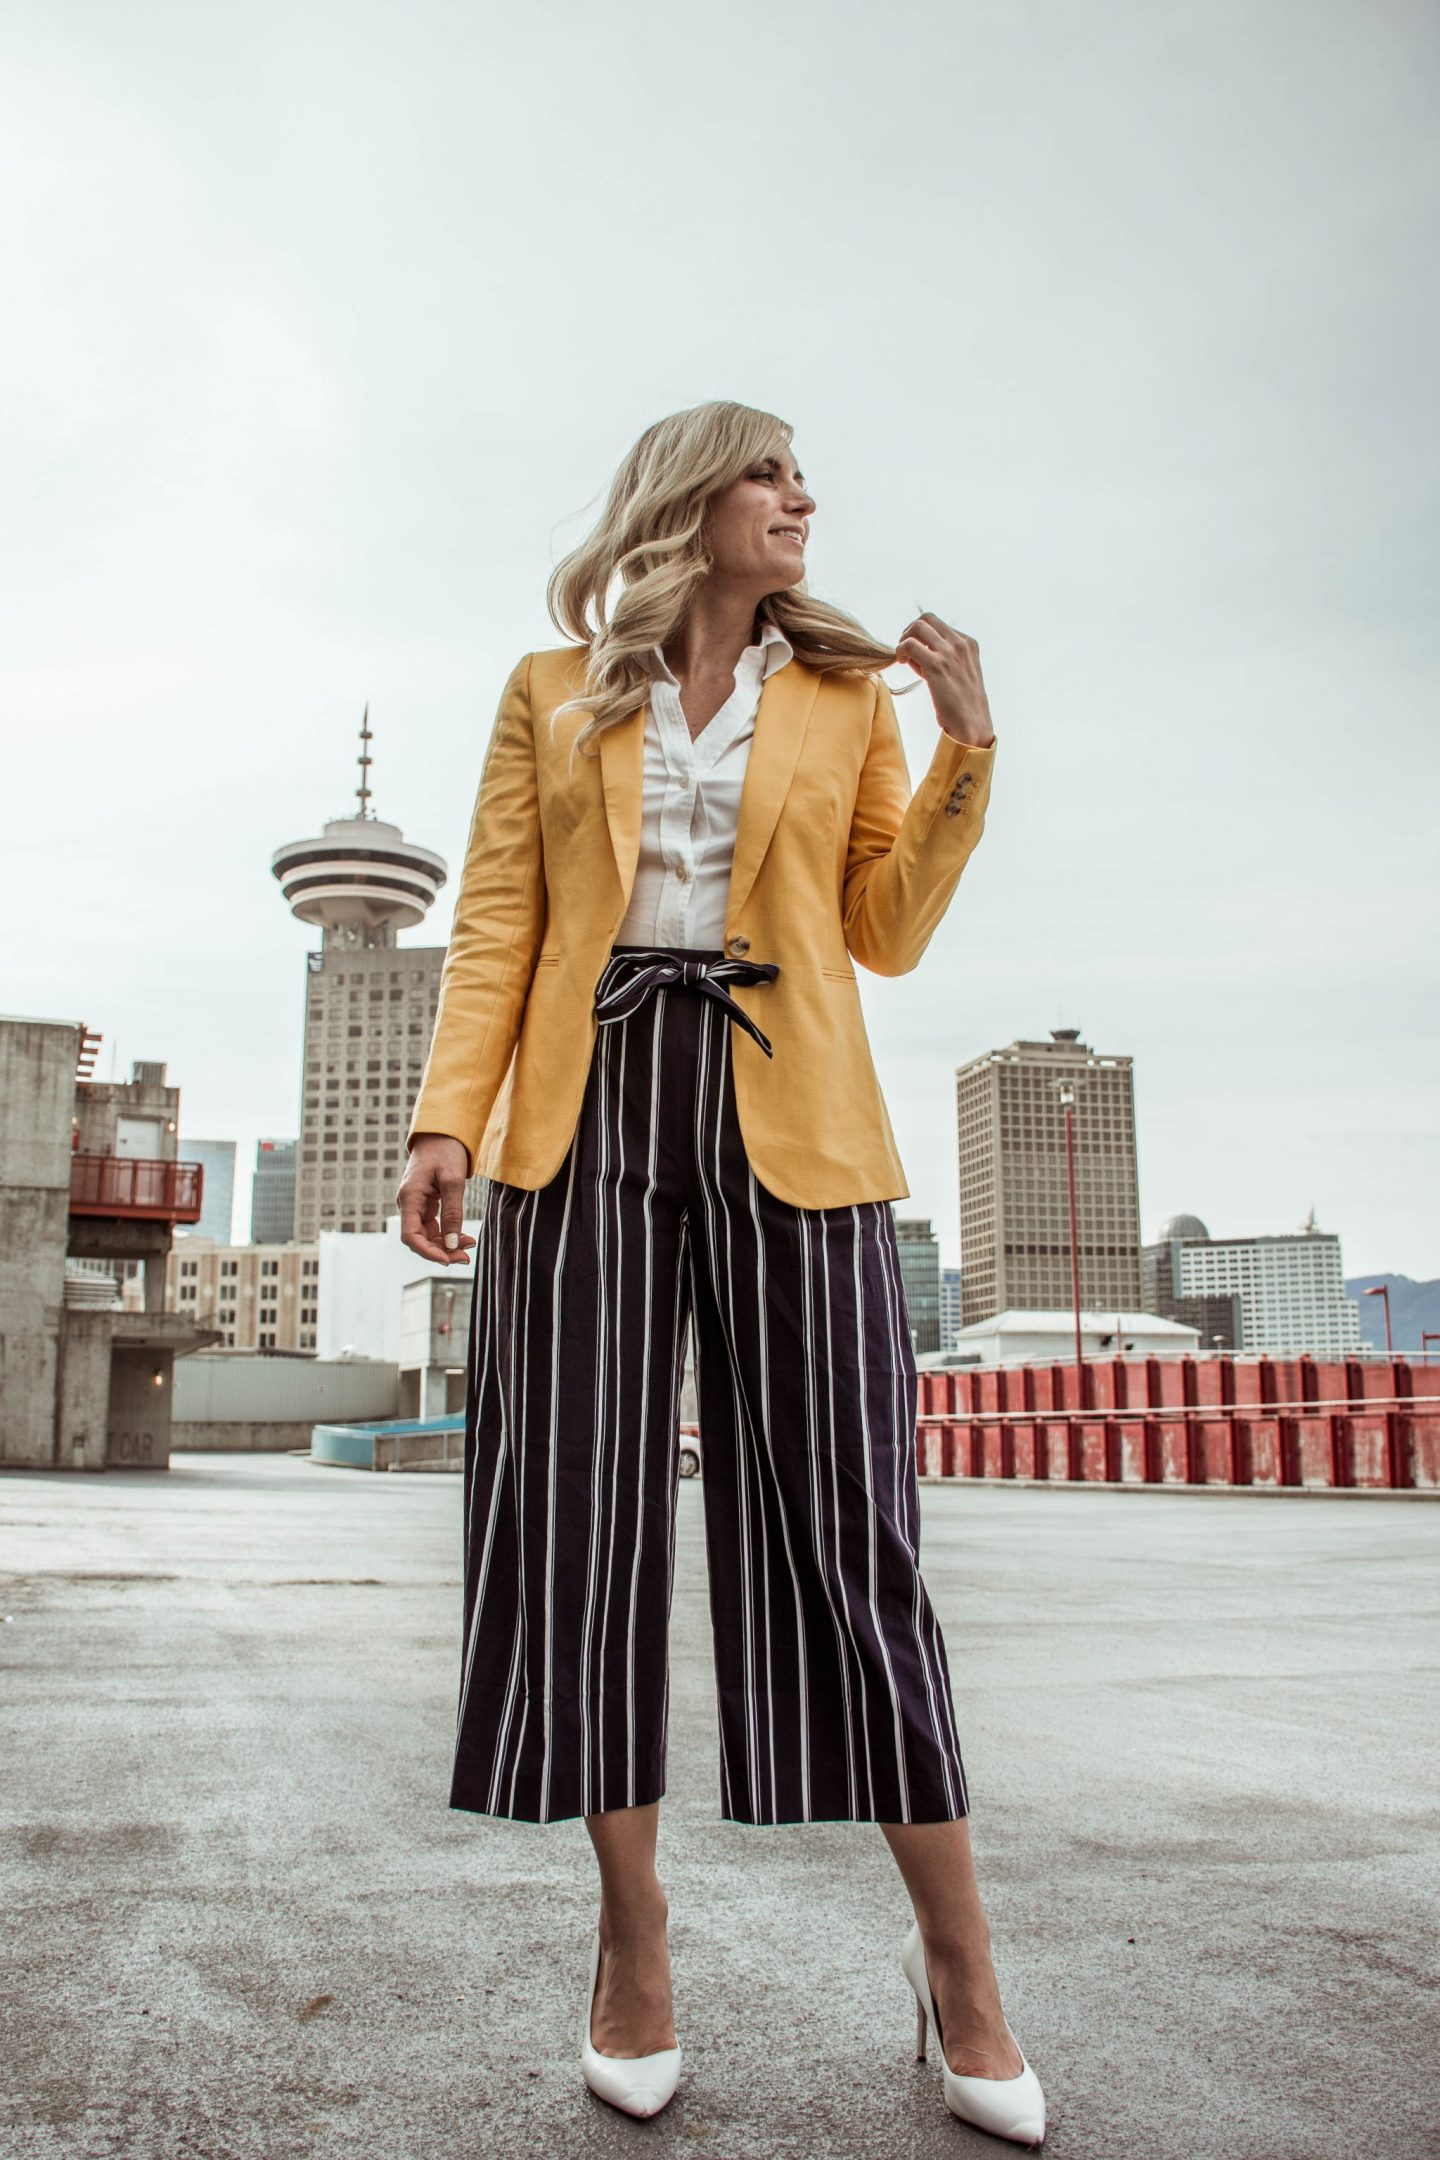 legallee blonde fashion blogger what to wear with a yellow blazer and striped culotte pants